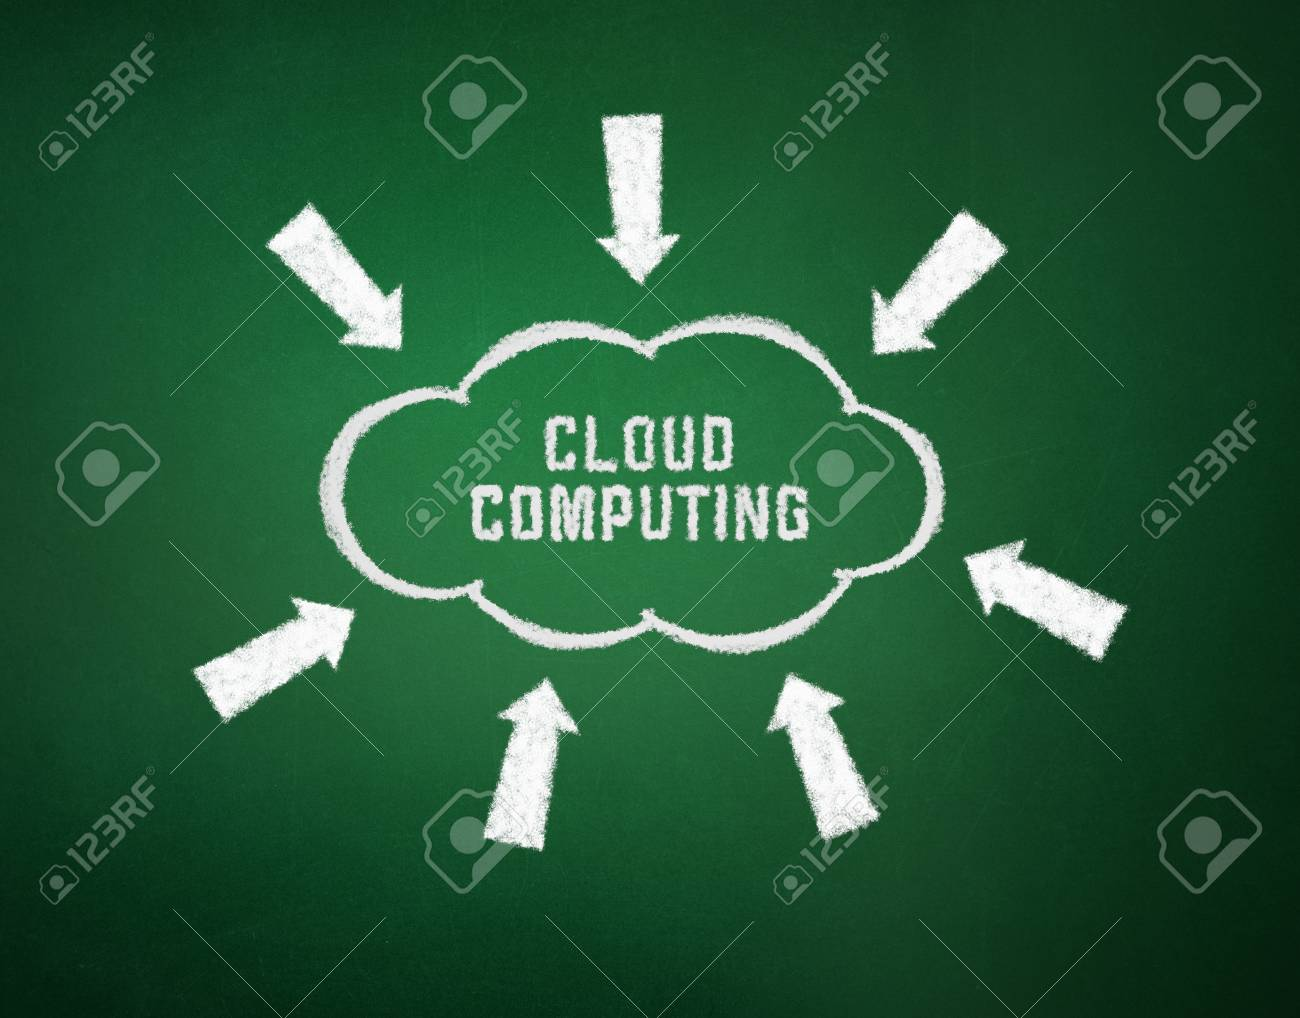 Conceptual picture on cloud computing theme. Drawing on textured background. Stock Photo - 11913910